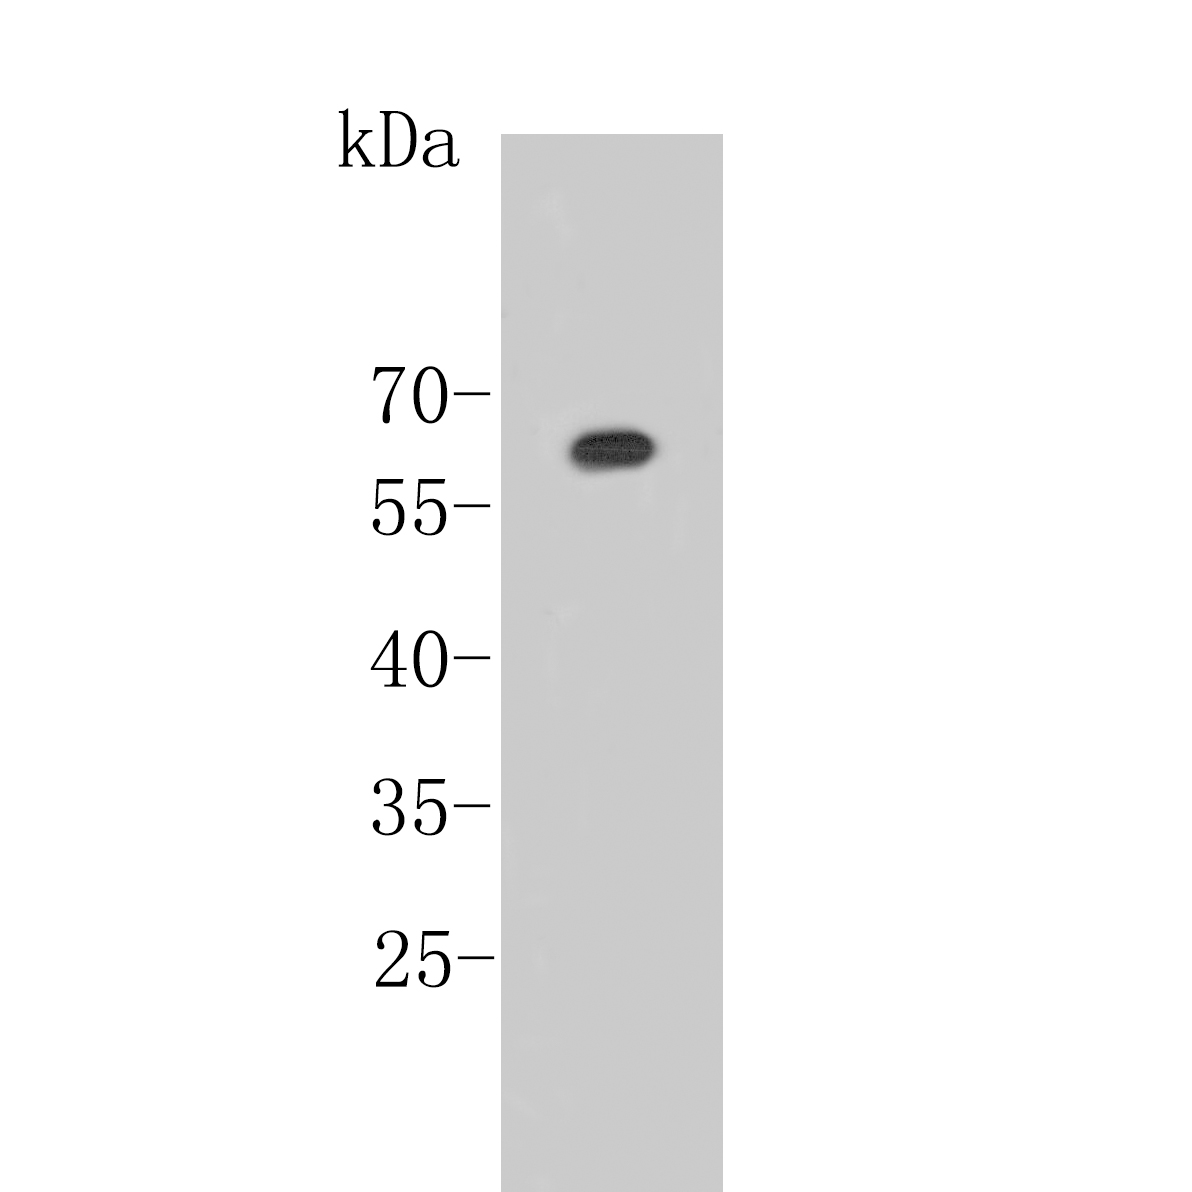 Western blot analysis of Estrogen Receptor alpha on different lysates. Proteins were transferred to a PVDF membrane and blocked with 5% BSA in PBS for 1 hour at room temperature. The primary antibody was used at a 1:500 dilution in 5% BSA at room temperature for 2 hours. Goat Anti-Rabbit IgG - HRP Secondary Antibody (HA1001) at 1:5,000 dilution was used for 1 hour at room temperature.<br />  Positive control: <br />  Lane 1: 293T cell lysate<br />  Lane 2: Rat ovary tissue lysate